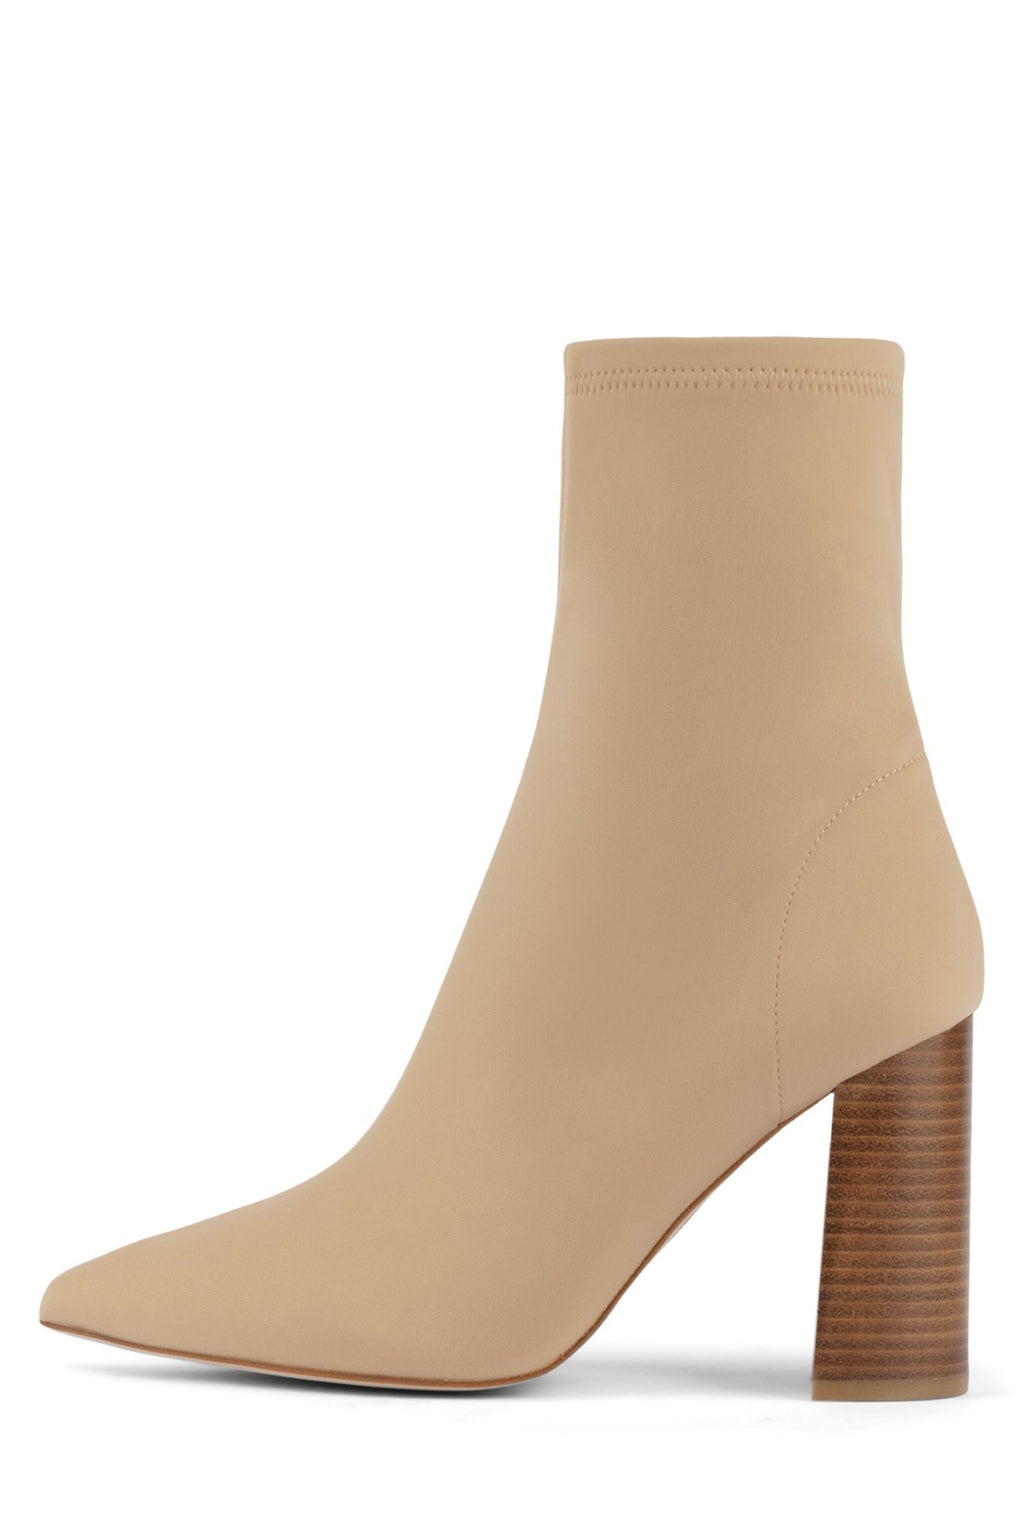 SIREN-3 Heeled Boot ST Beige Neoprene 6